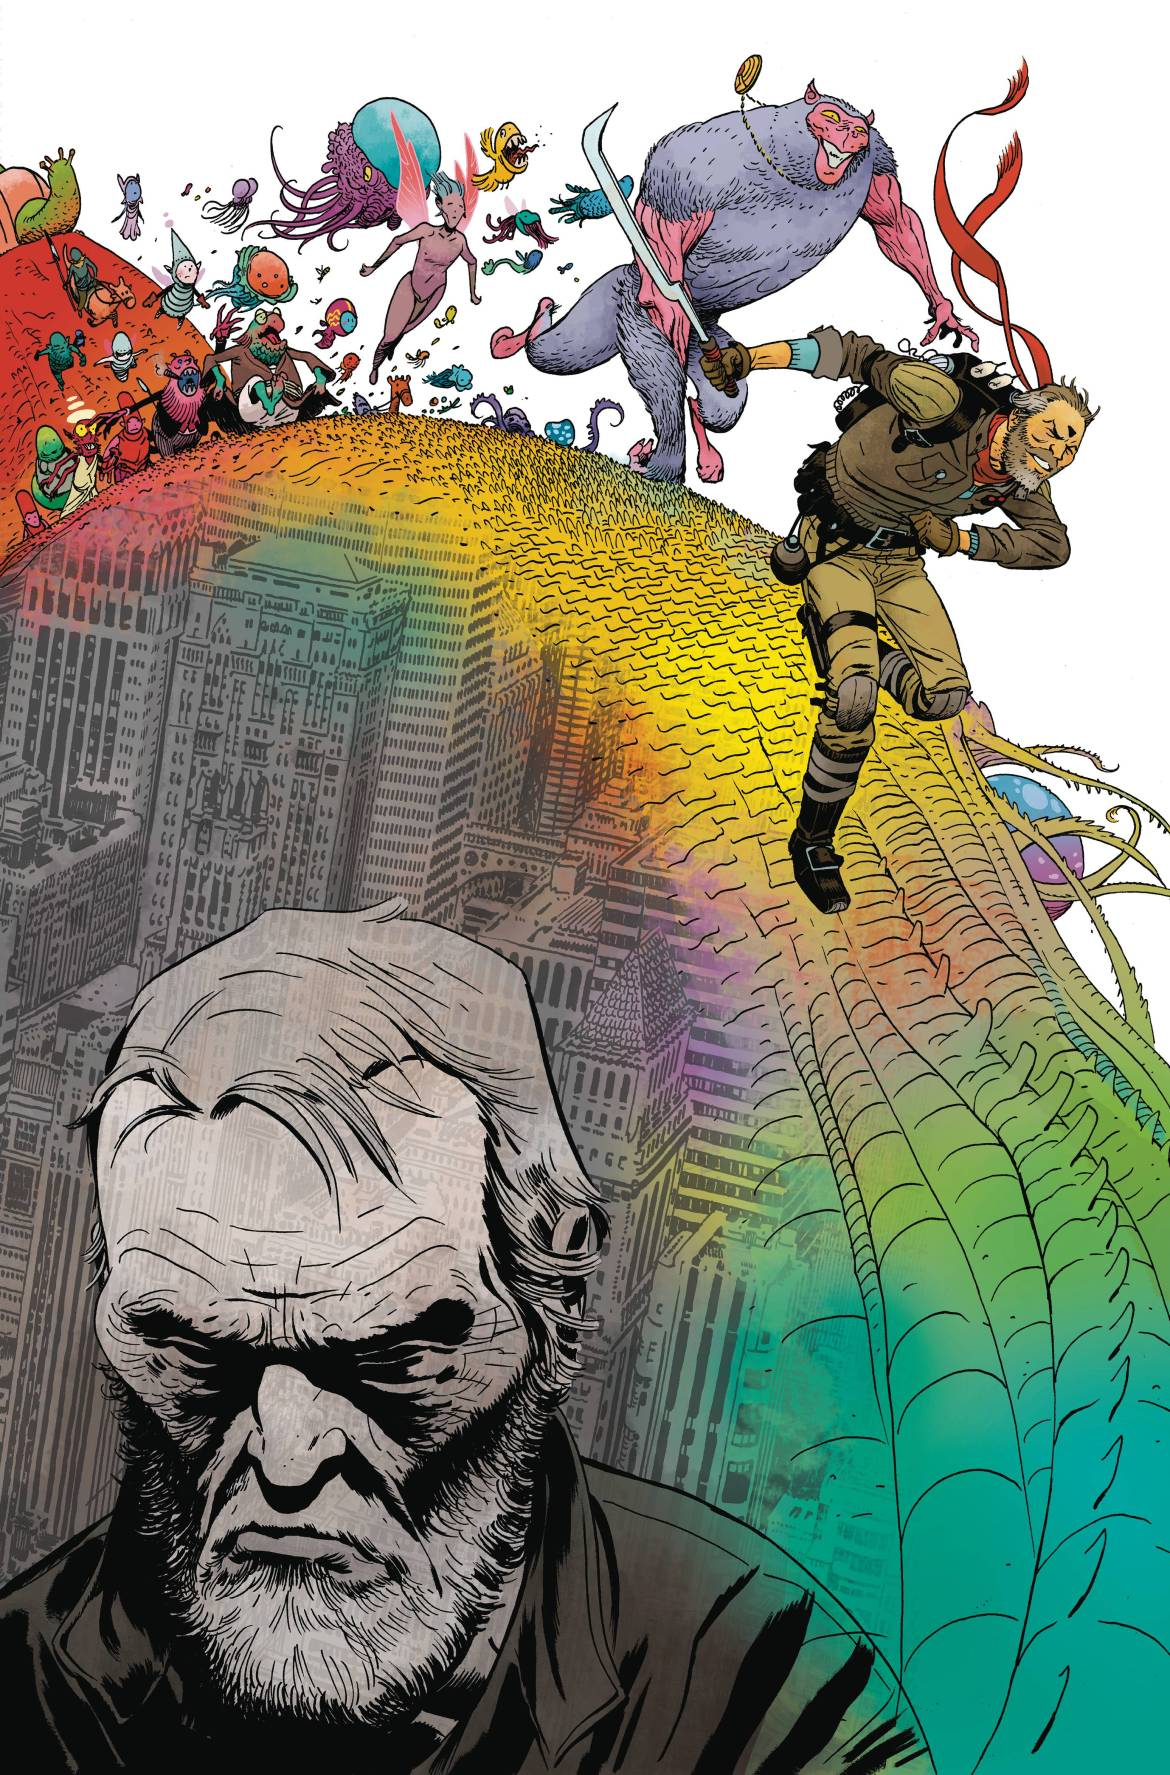 727065_ether-copper-golems-3-cover-b-variant-martin ComicList: Dark Horse Comics New Releases for 07/18/2018